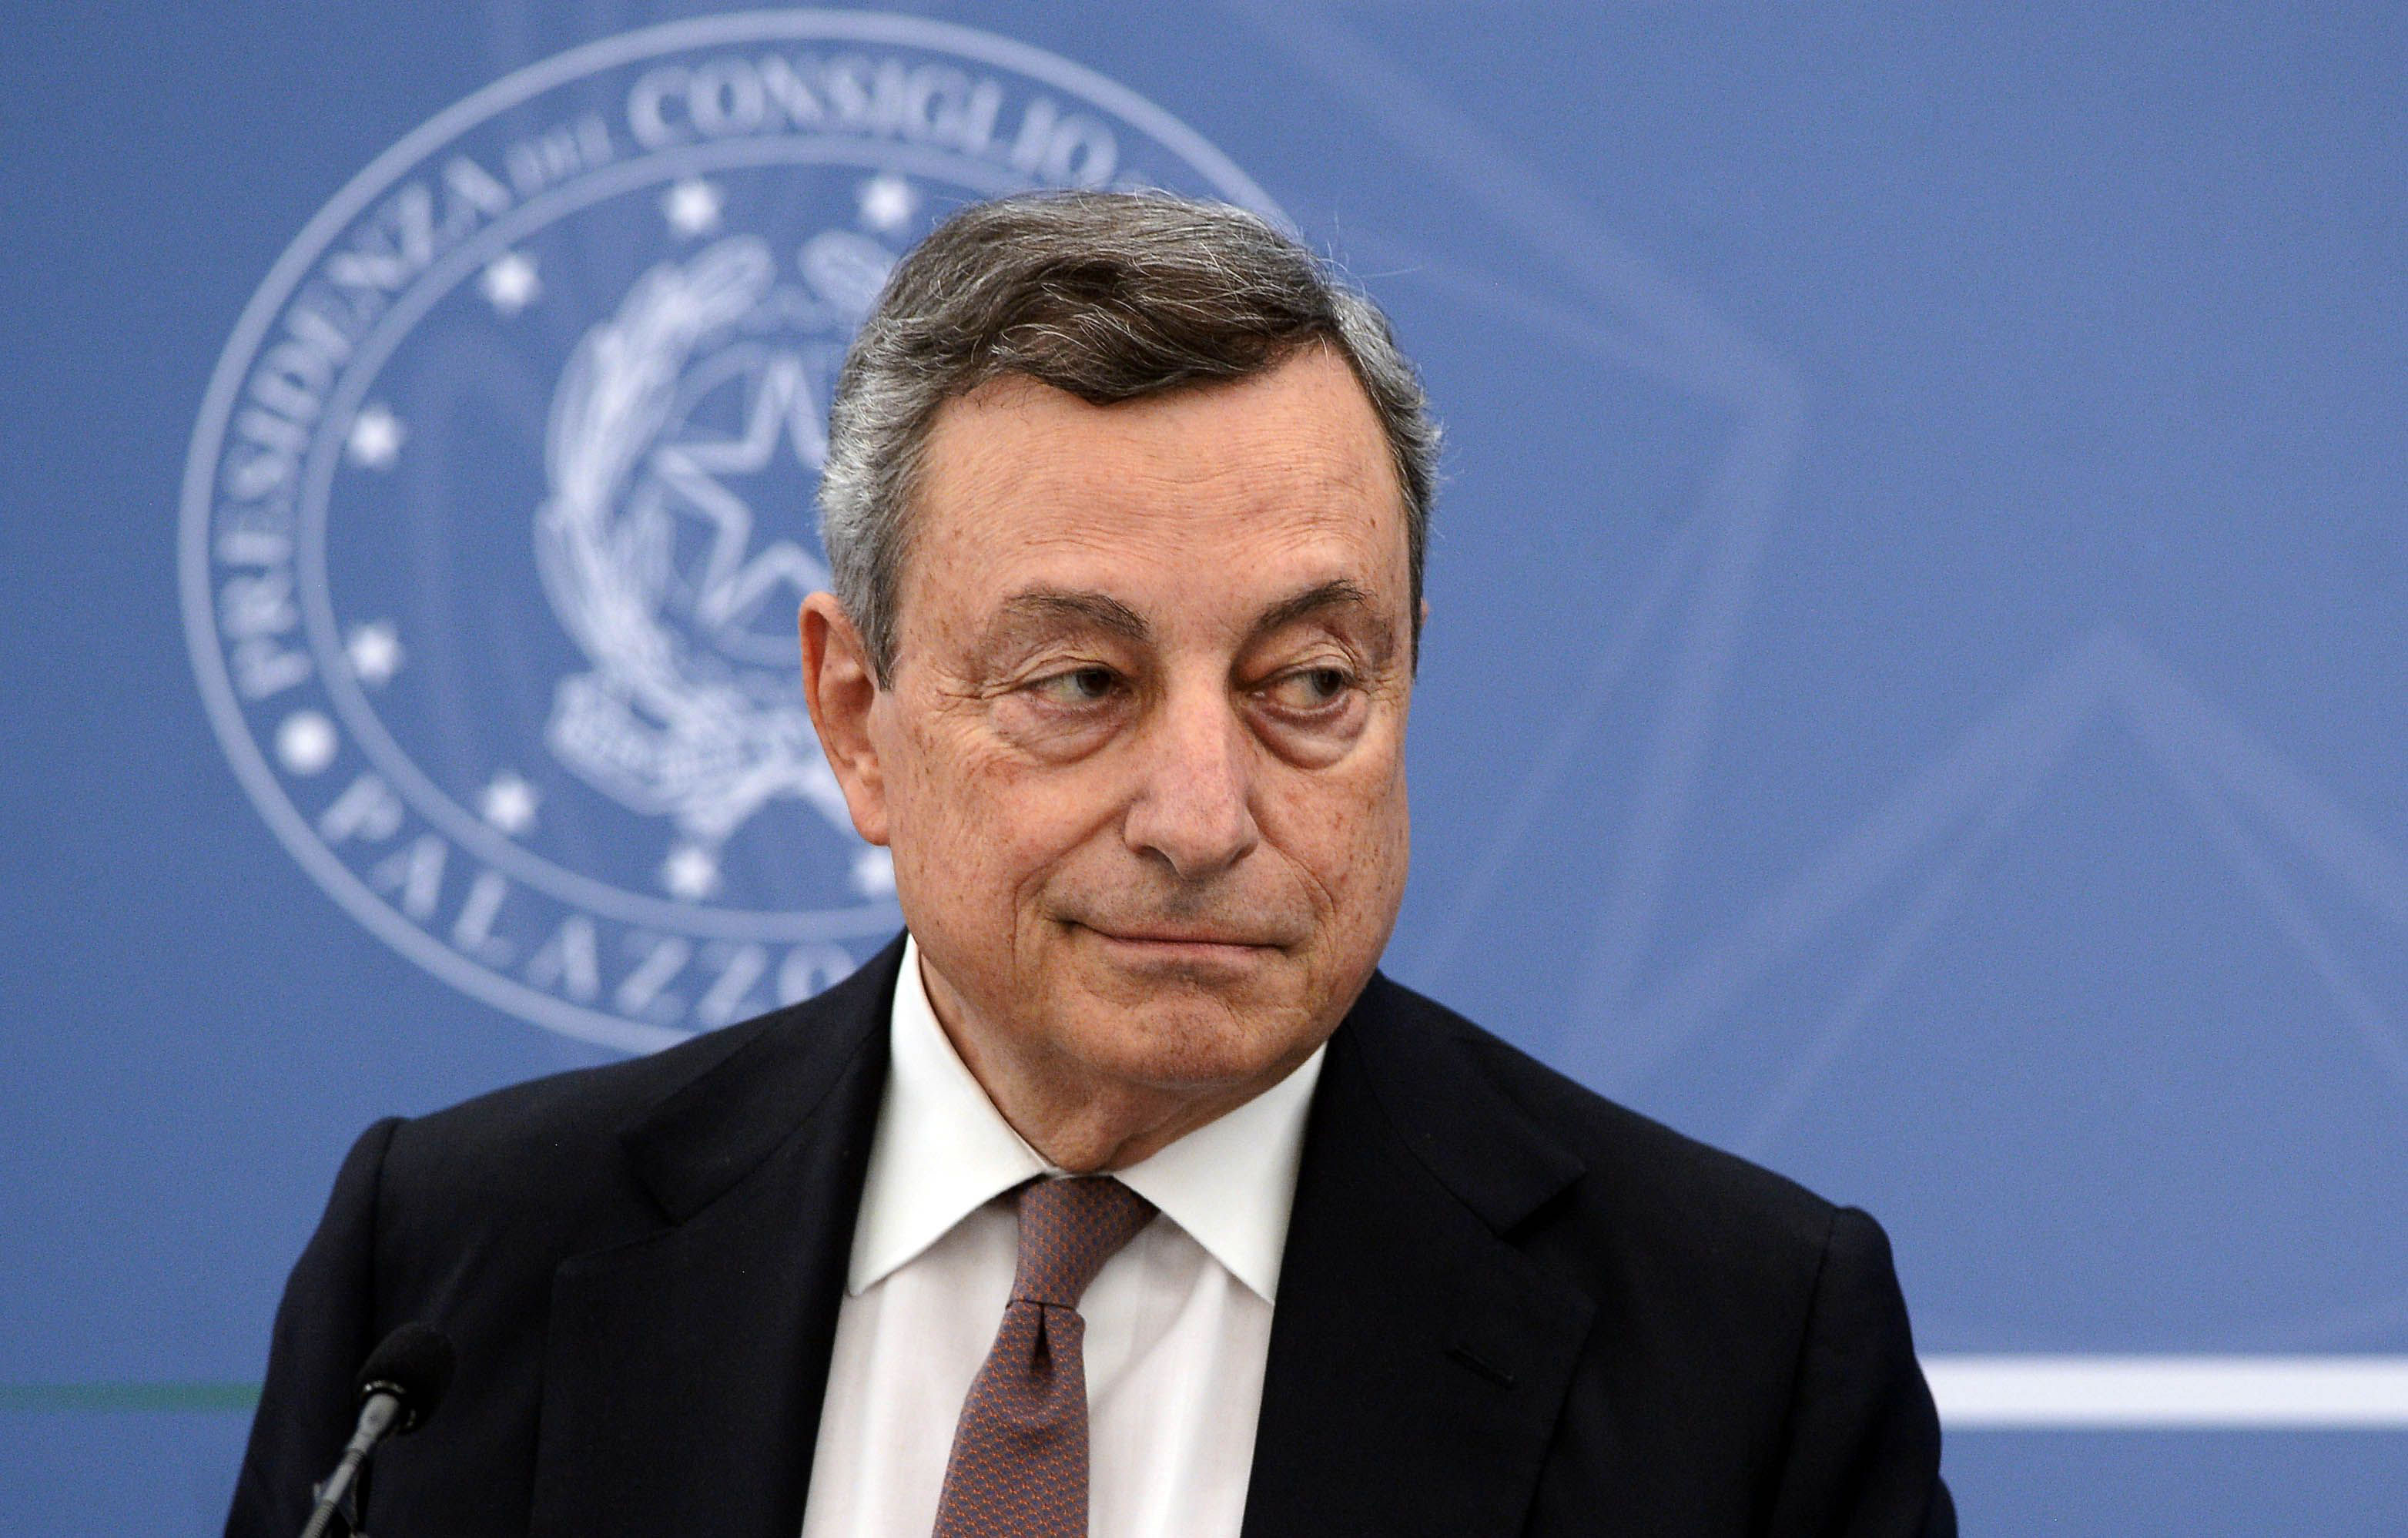 Italian Prime Minister Mario Draghi holds a press conference in Rome on July 22, 2021.